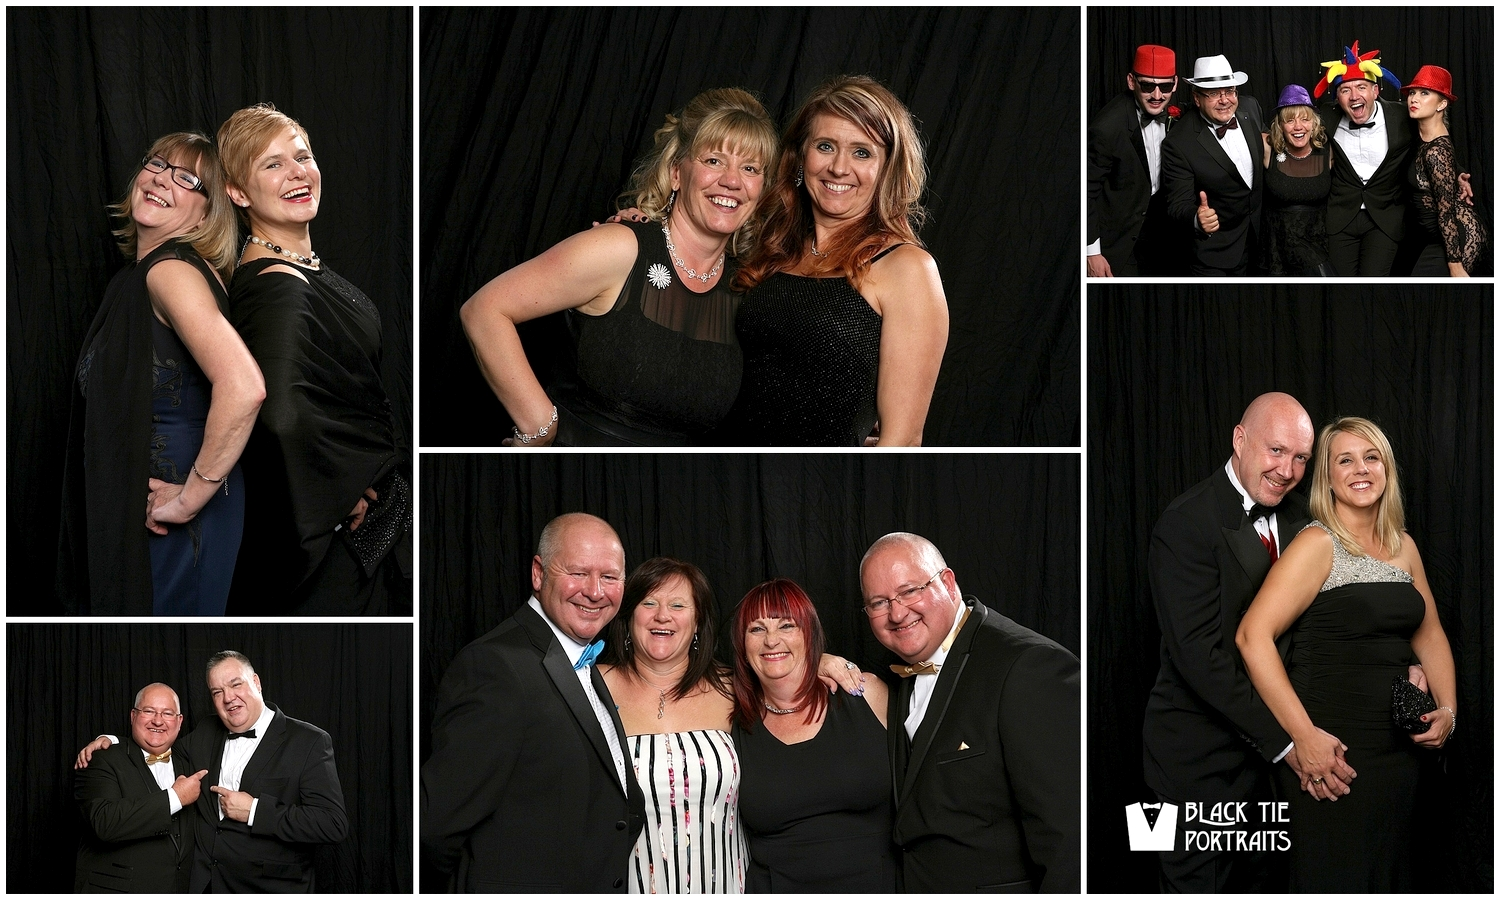 Freemasons Event Photographer Bristol | Black Tie Portraits